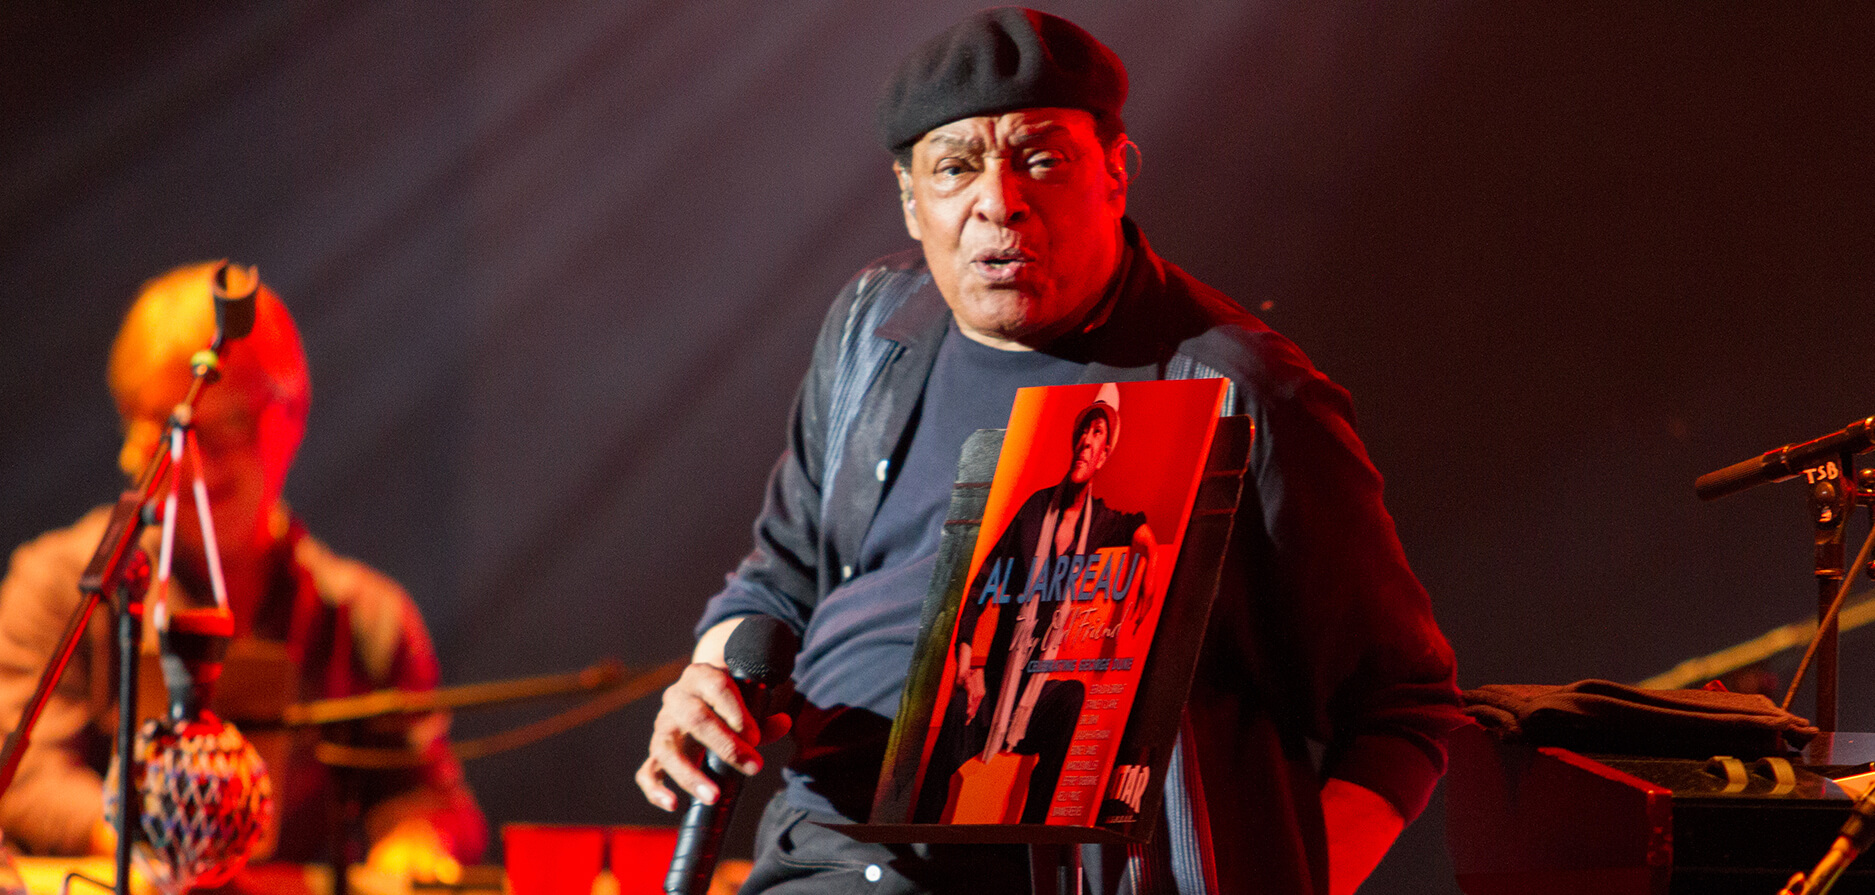 Uniform2-HomeSliders_0007_19 - Al Jarreau- slider 1jpg copy